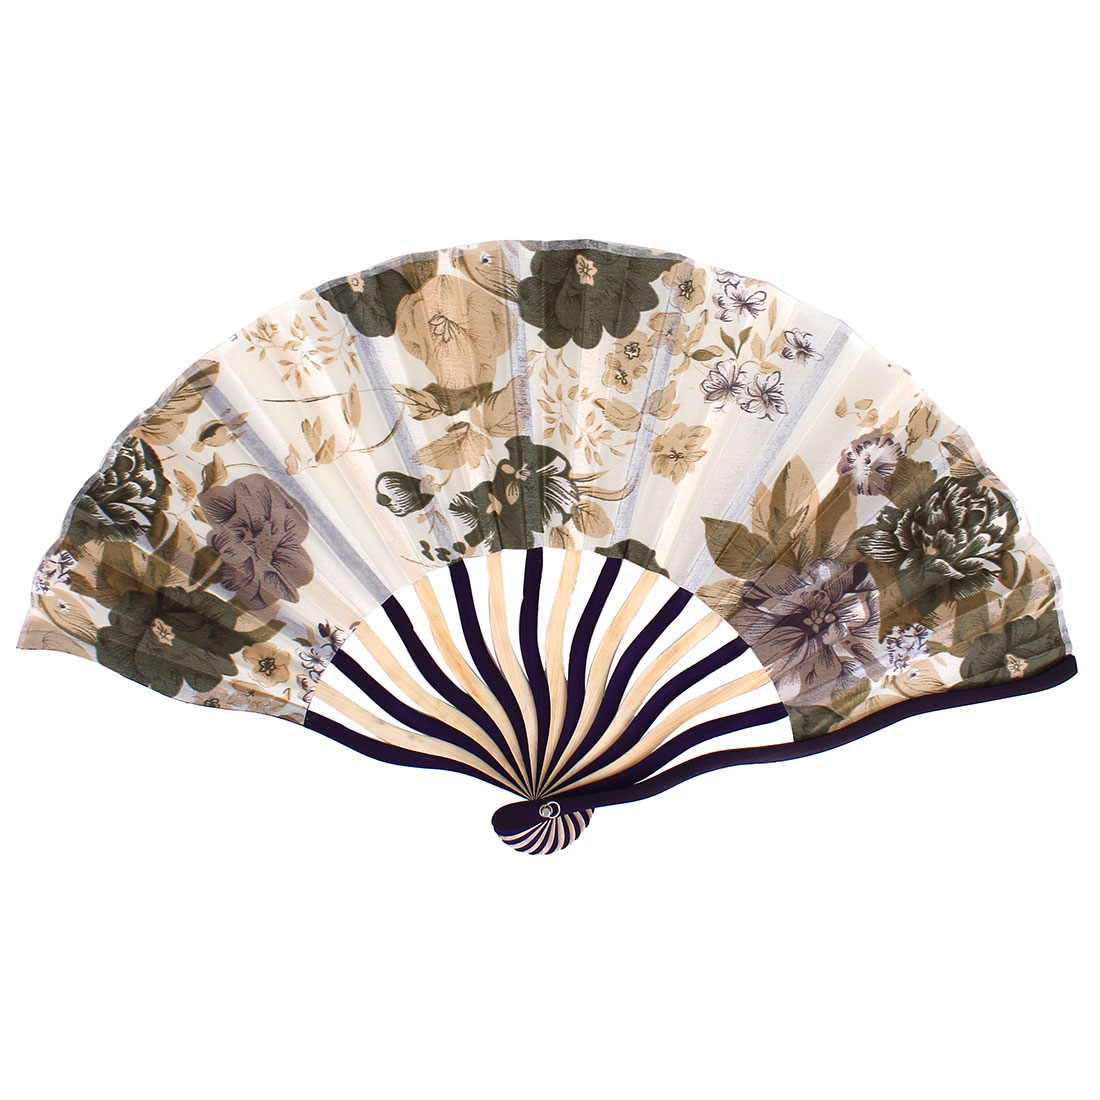 Chinese Tradition Blooming Peony Flower Print Ivory Indigo Blue Wood Frame Beige Fabric Cloth Handheld Foldable Hand Fan